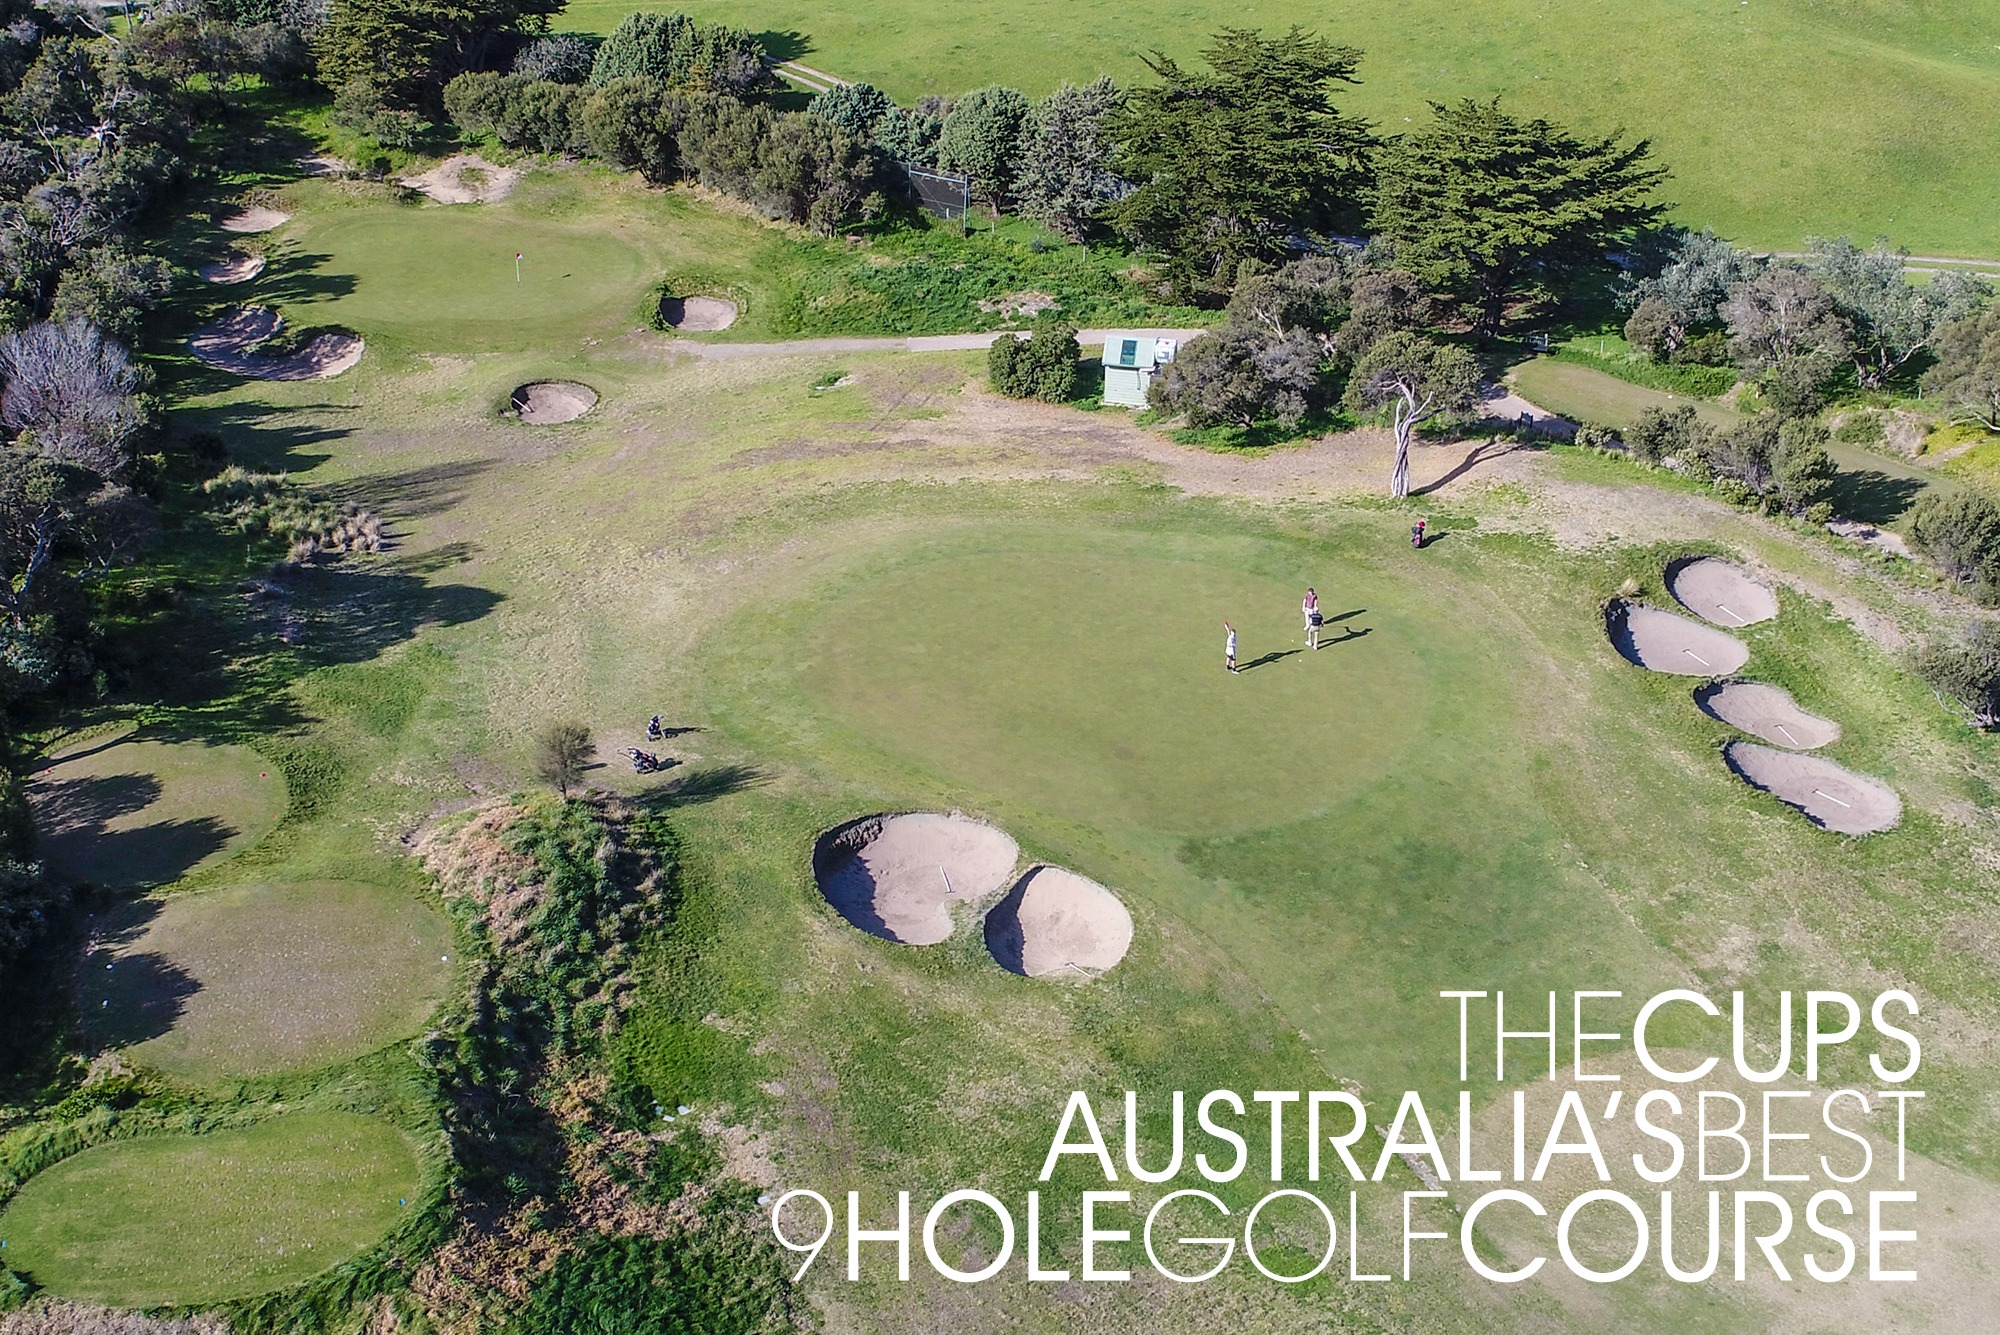 The Cups Australia's Best 9 Hole Golf Course